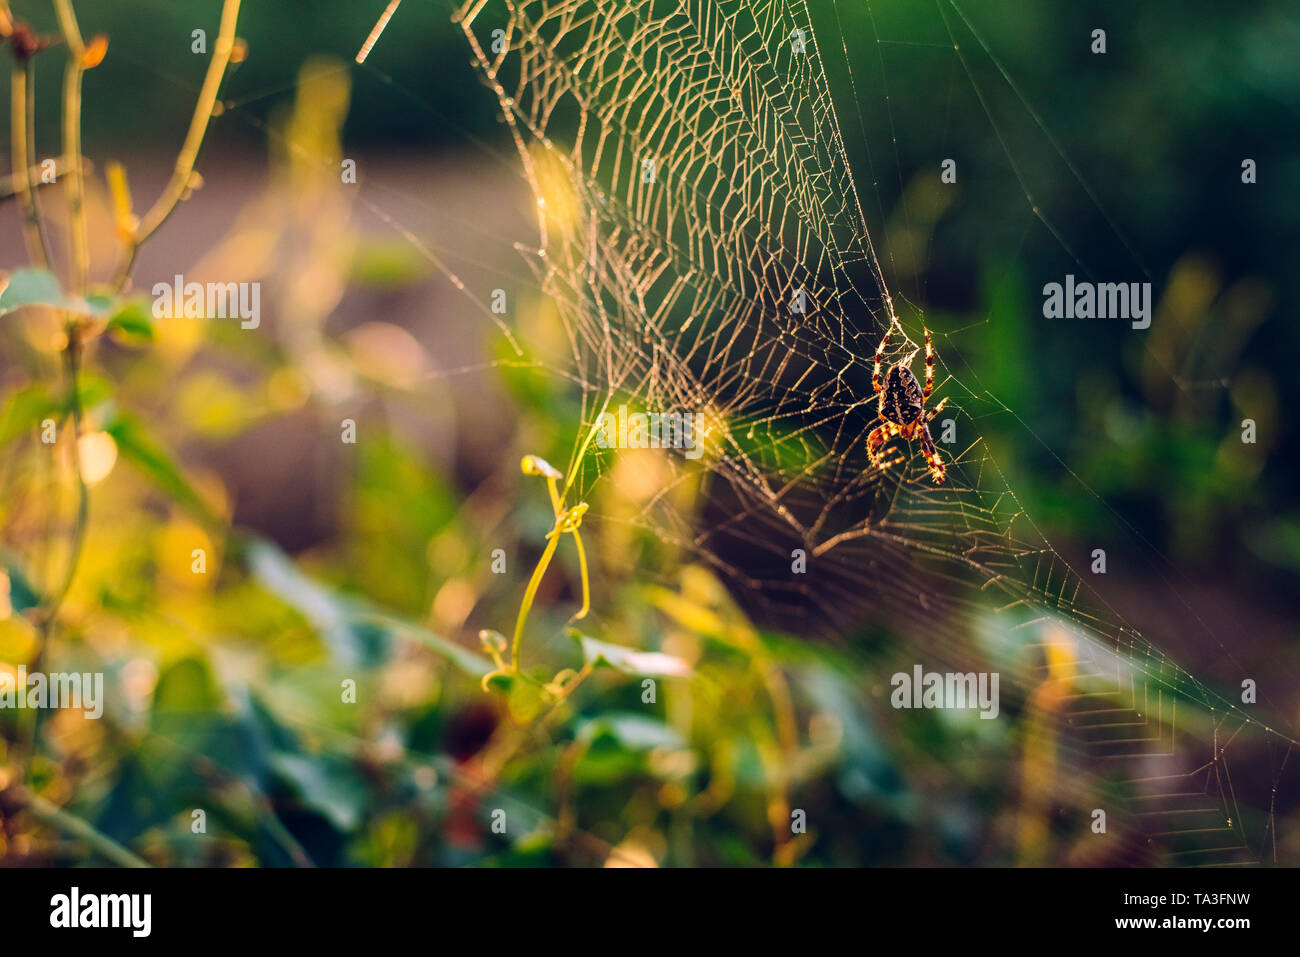 Spider weaving his spider web against a light in a forest. - Stock Image